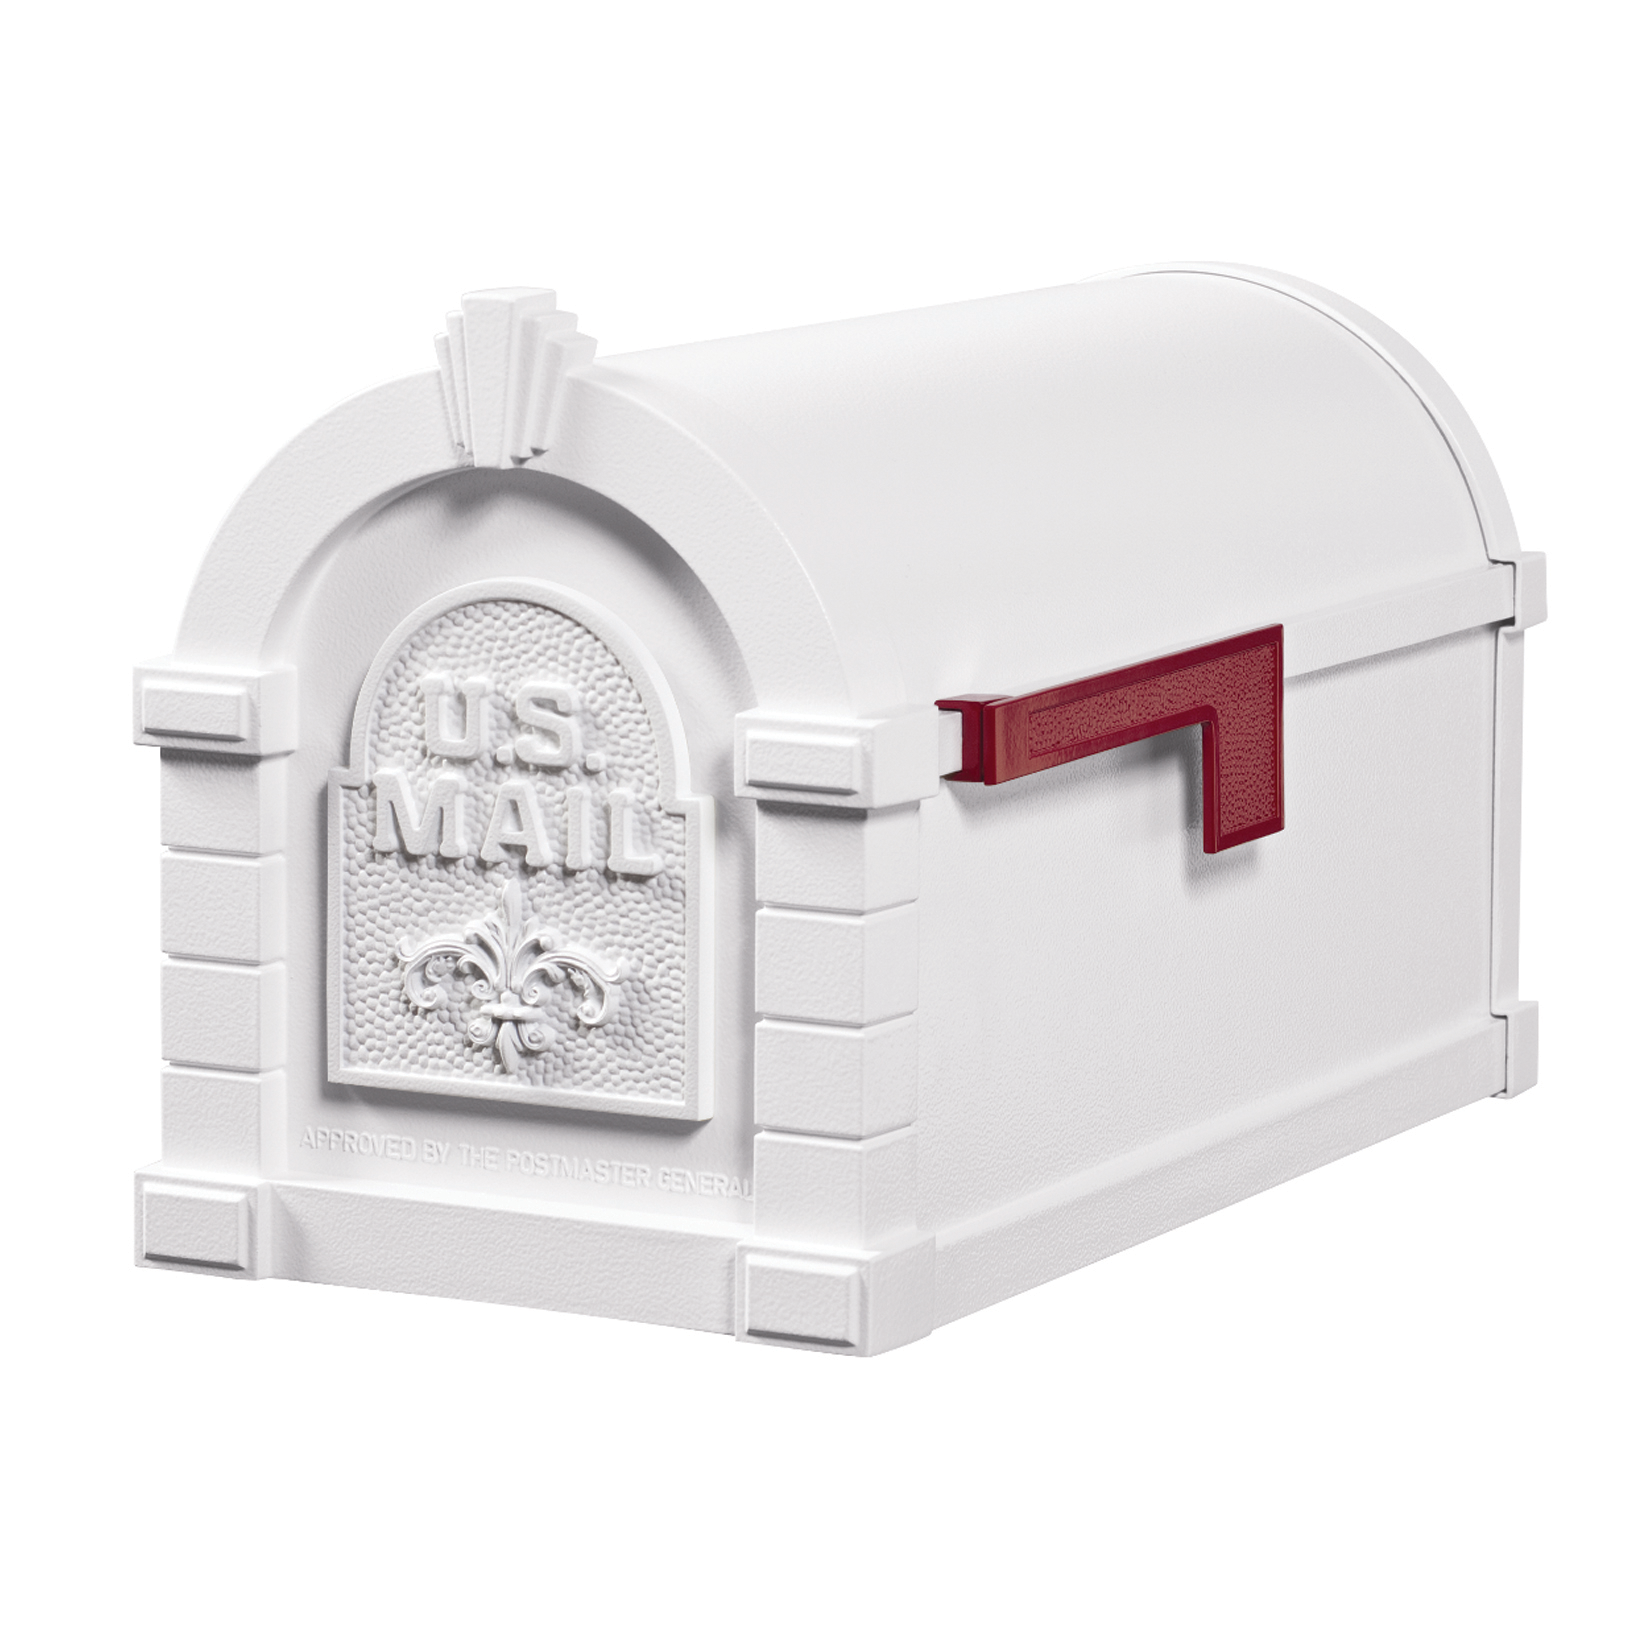 Gaines Fleur De Lis Keystone Mailboxes, All White